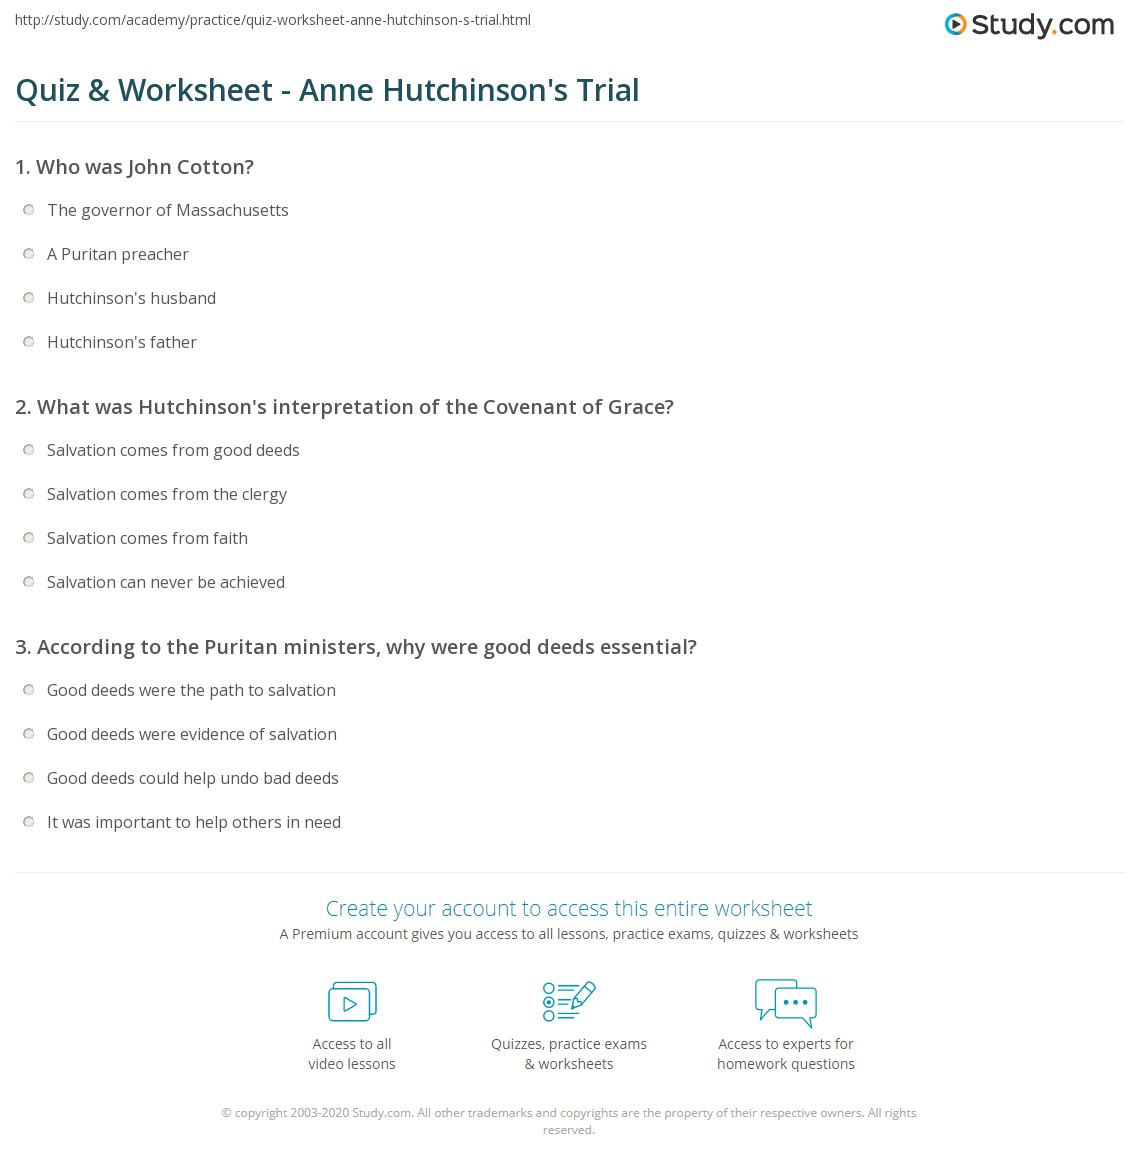 quiz  amp  worksheet   anne hutchinson    s trial   study comprint trial of anne hutchinson  history  significance  amp  timeline worksheet